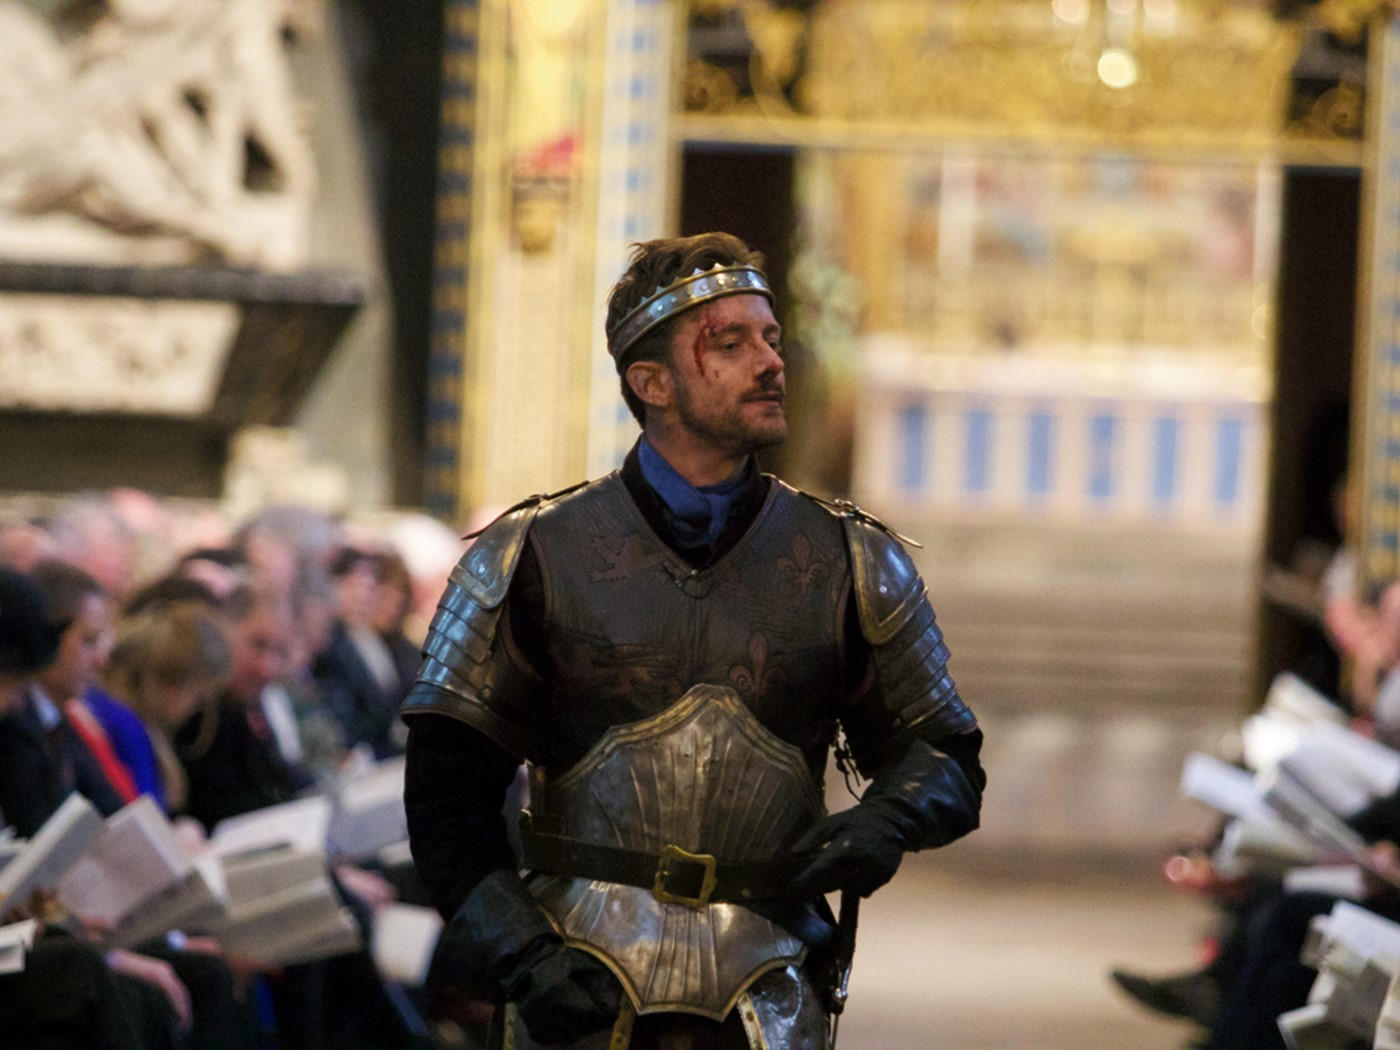 Sam Marks, actor, Royal Shakespearean Company, read the Saint Crispin's Day Speech from Henry the Fifth, Act IV, Scene 3